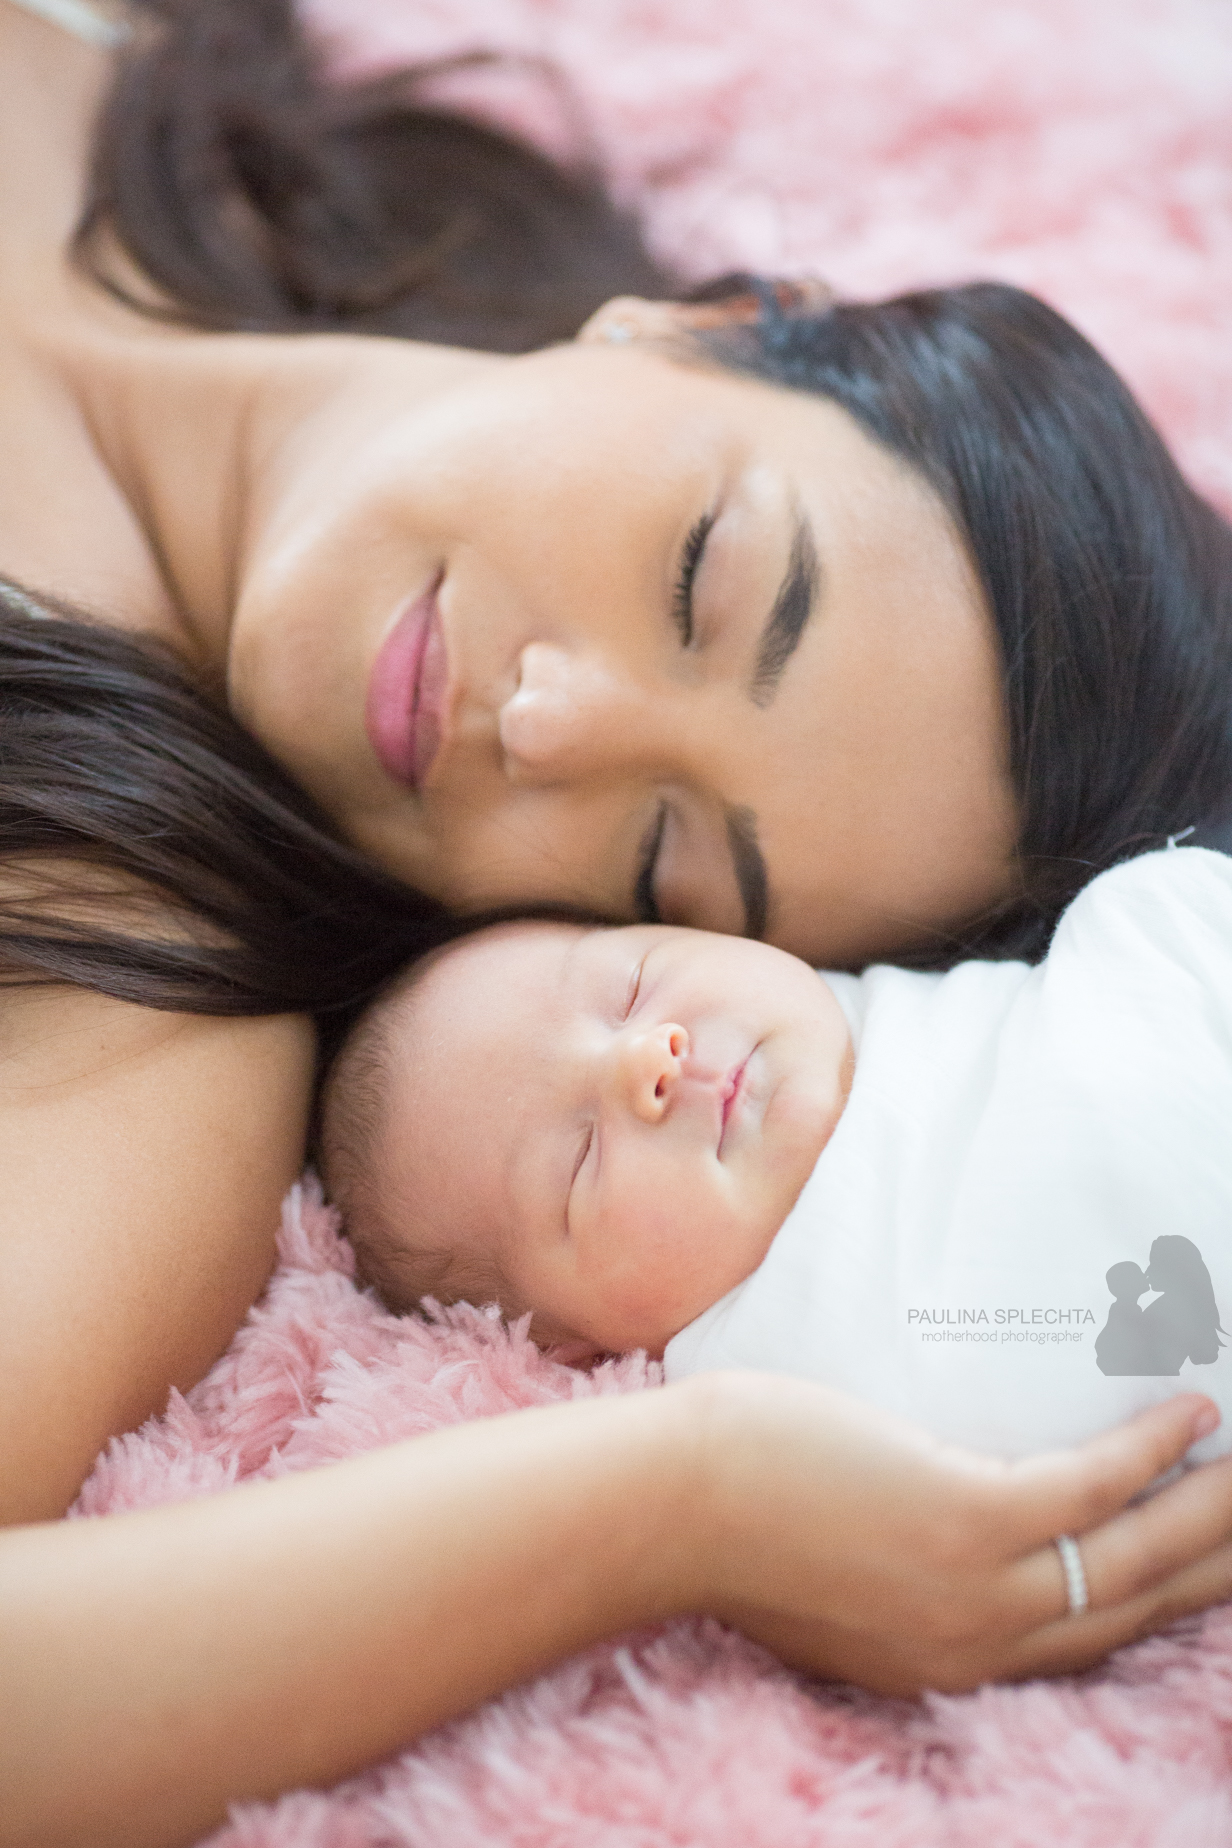 south-florida-breastfeeding-birth-photographer-newborn-family-maternity-1.png